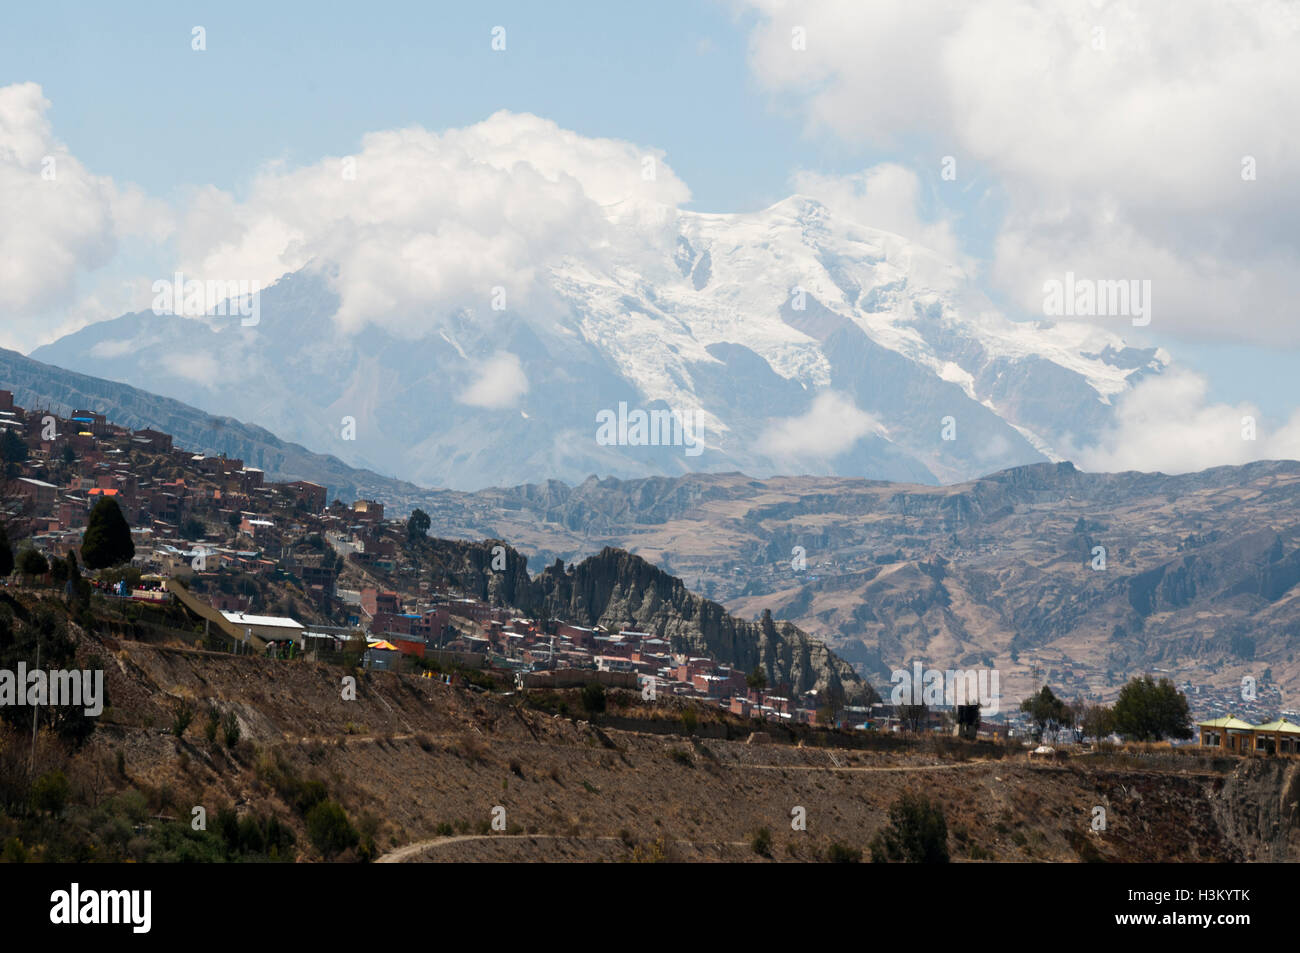 Nevado Illimani, 6442m, an Andean peak in the Cordillera Real outside La Paz, Bolivia - Stock Image